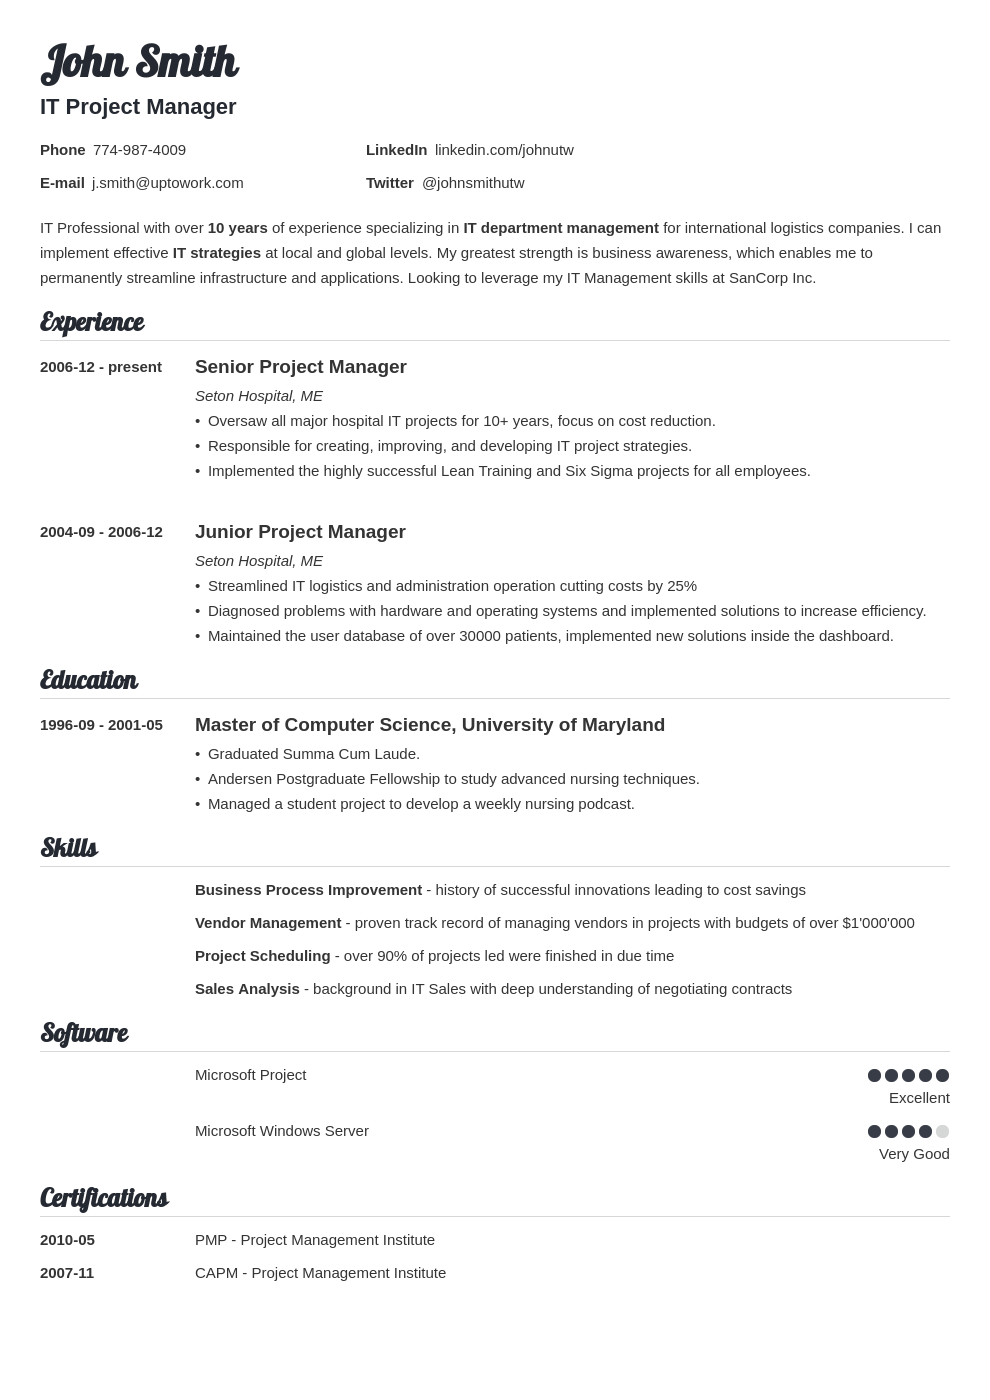 Charming Professional Resume Template Valera In Templates For A Resume